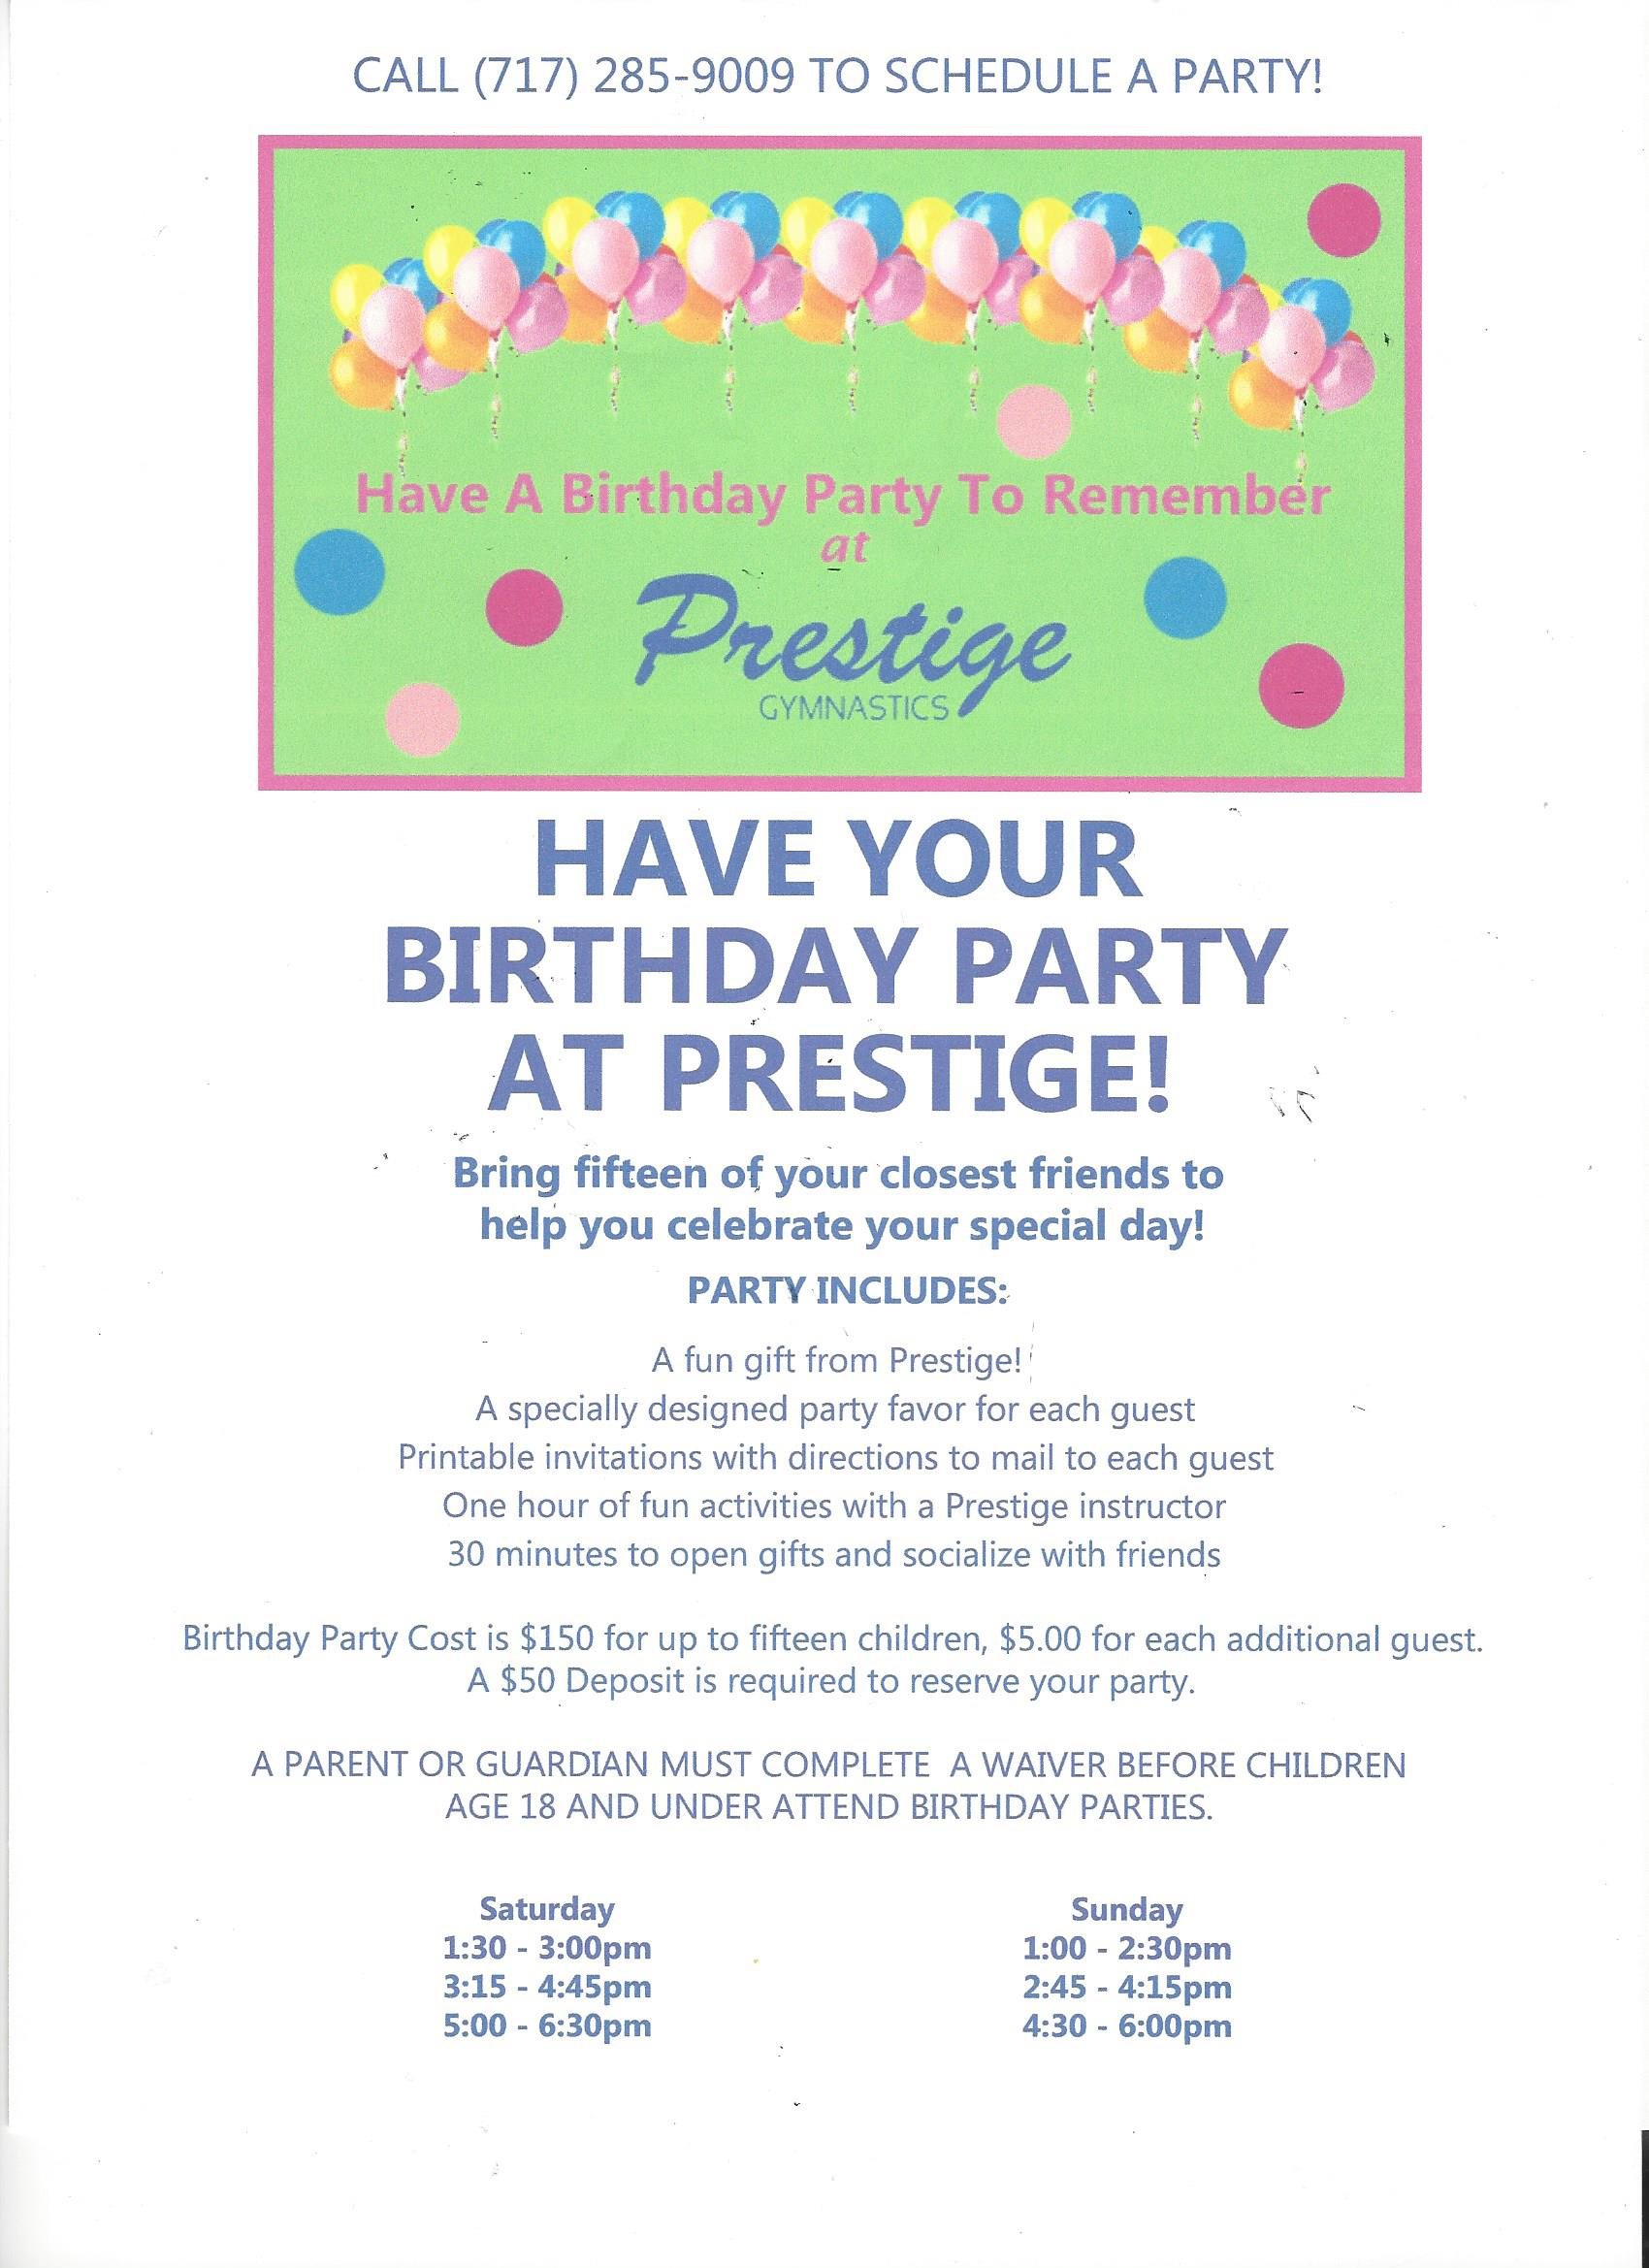 Birthday Parties – Prestige Gymnastics